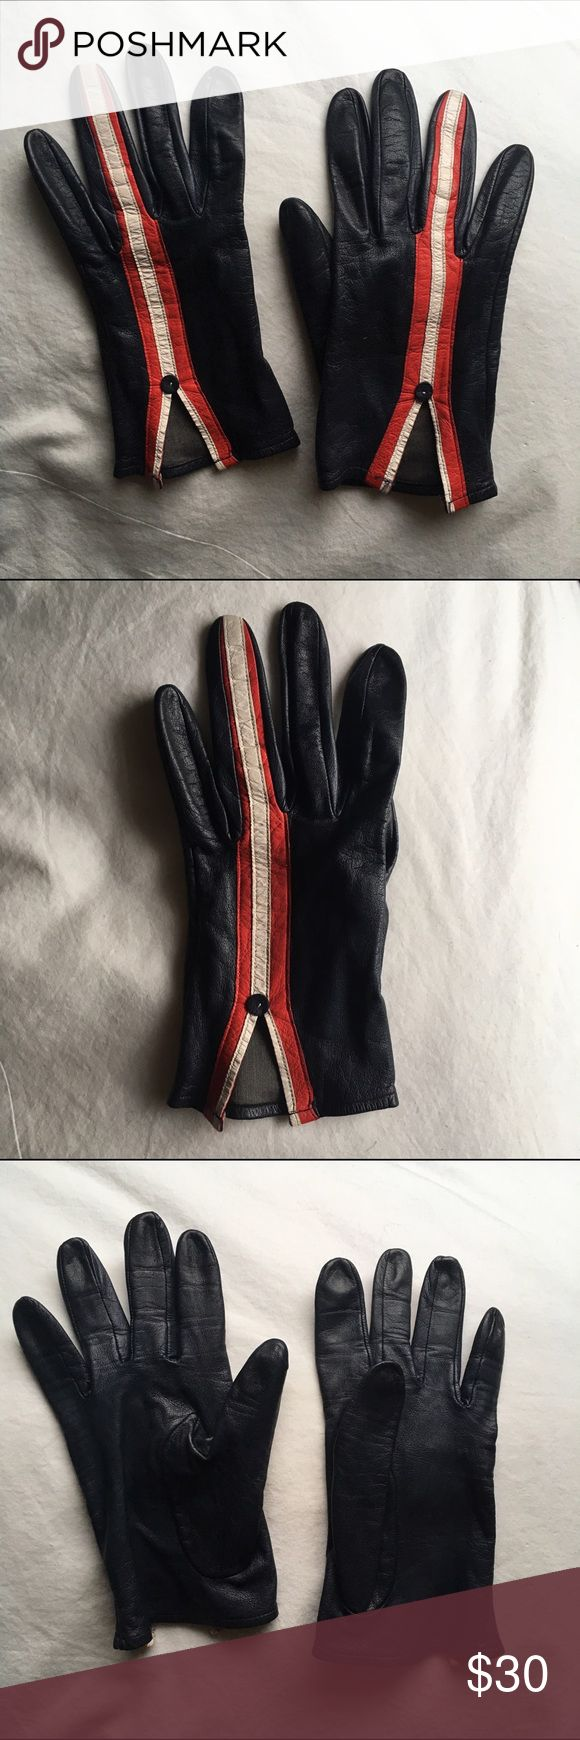 Vintage lightweight leather gloves Soft leather gloves, navy blue with red and white stripes down ring fingers, lightweight, lots of flexibility. Measurements to come but they fit my hands perfectly and I have large-ish hands. Vintage Accessories Gloves & Mittens